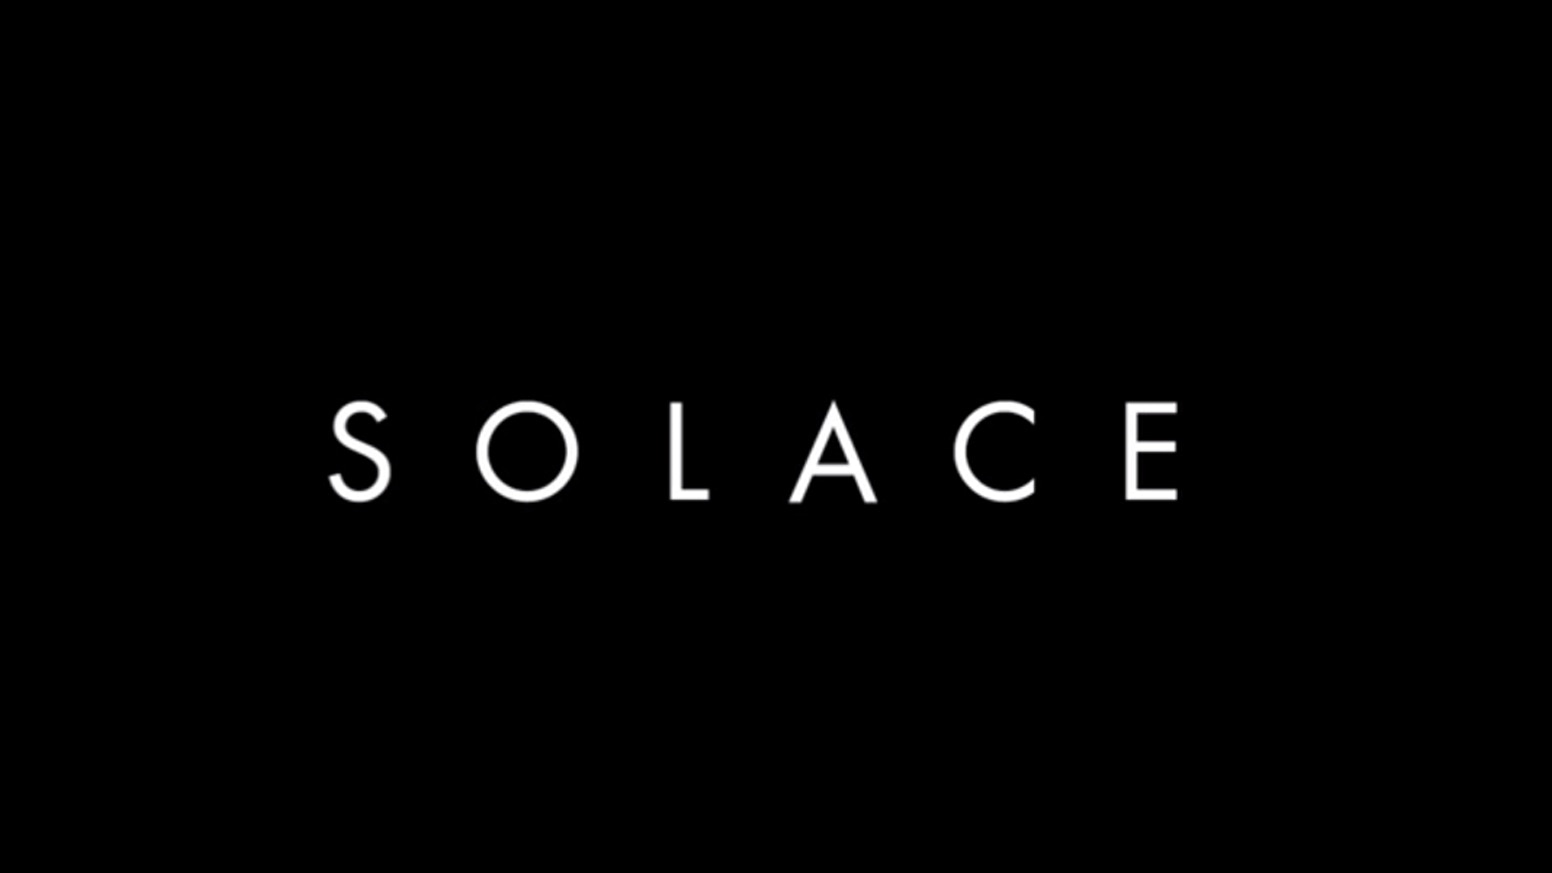 A coming of age drama about an idealistic teenage girl who finds solace in her friendship with the troubled girl next door. (www.solacefilm.com)